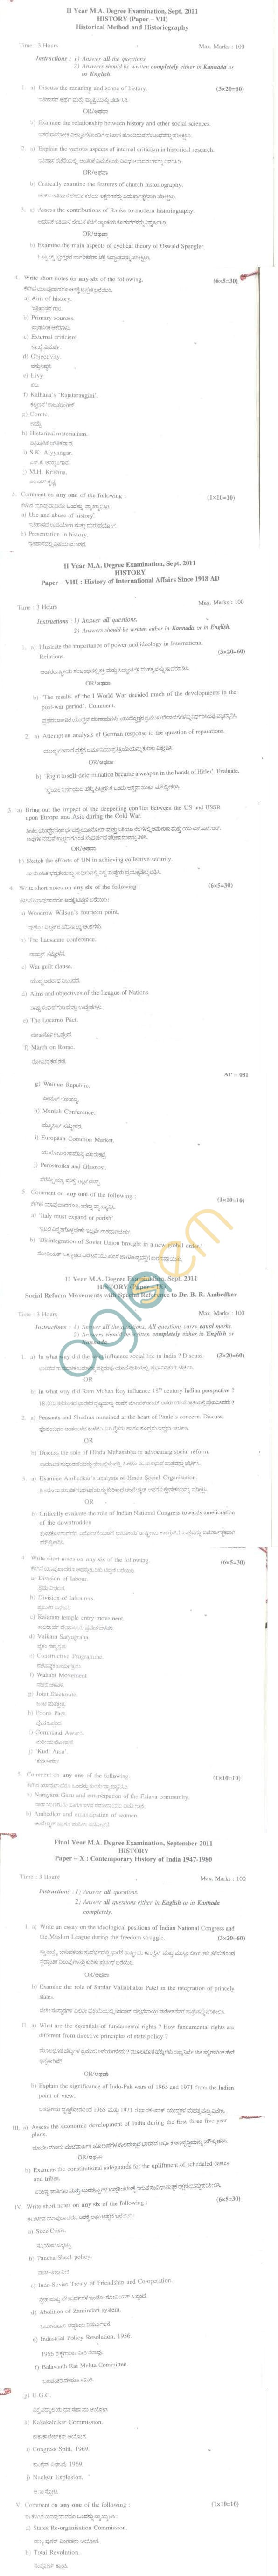 Bangalore University Question Paper September 2011 II Year M.A. Degree Examination - History